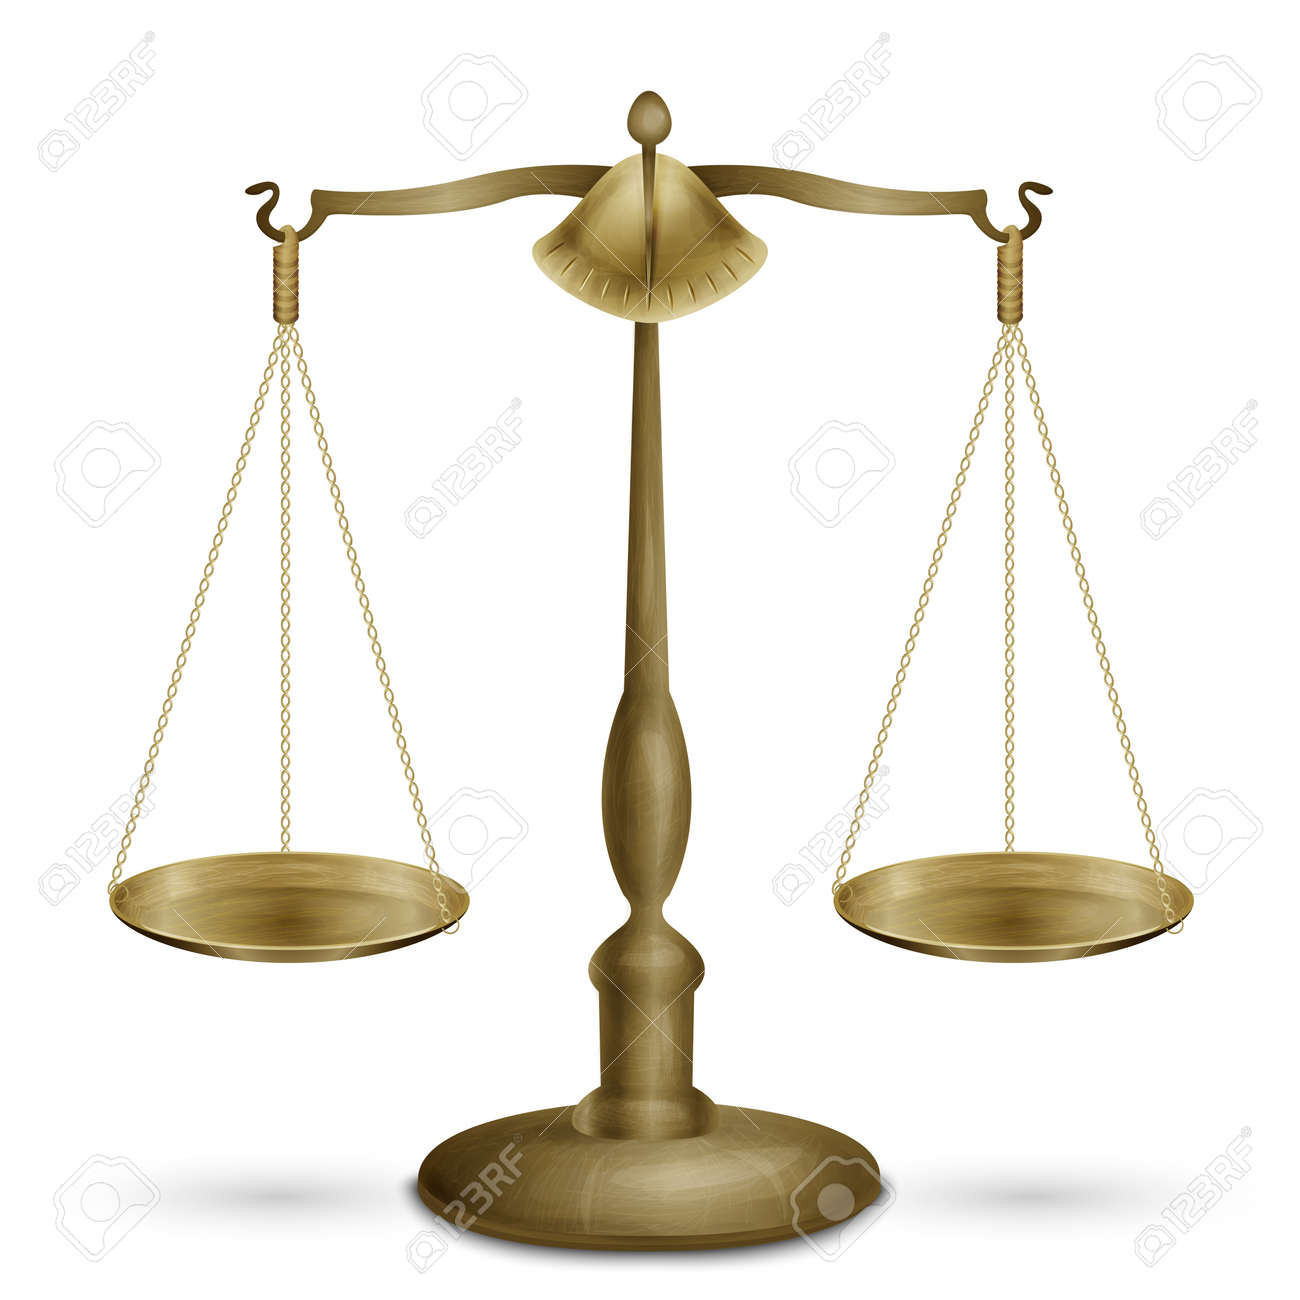 Antique scales low and justice symbol isolated on white background vector illustration - 167123501